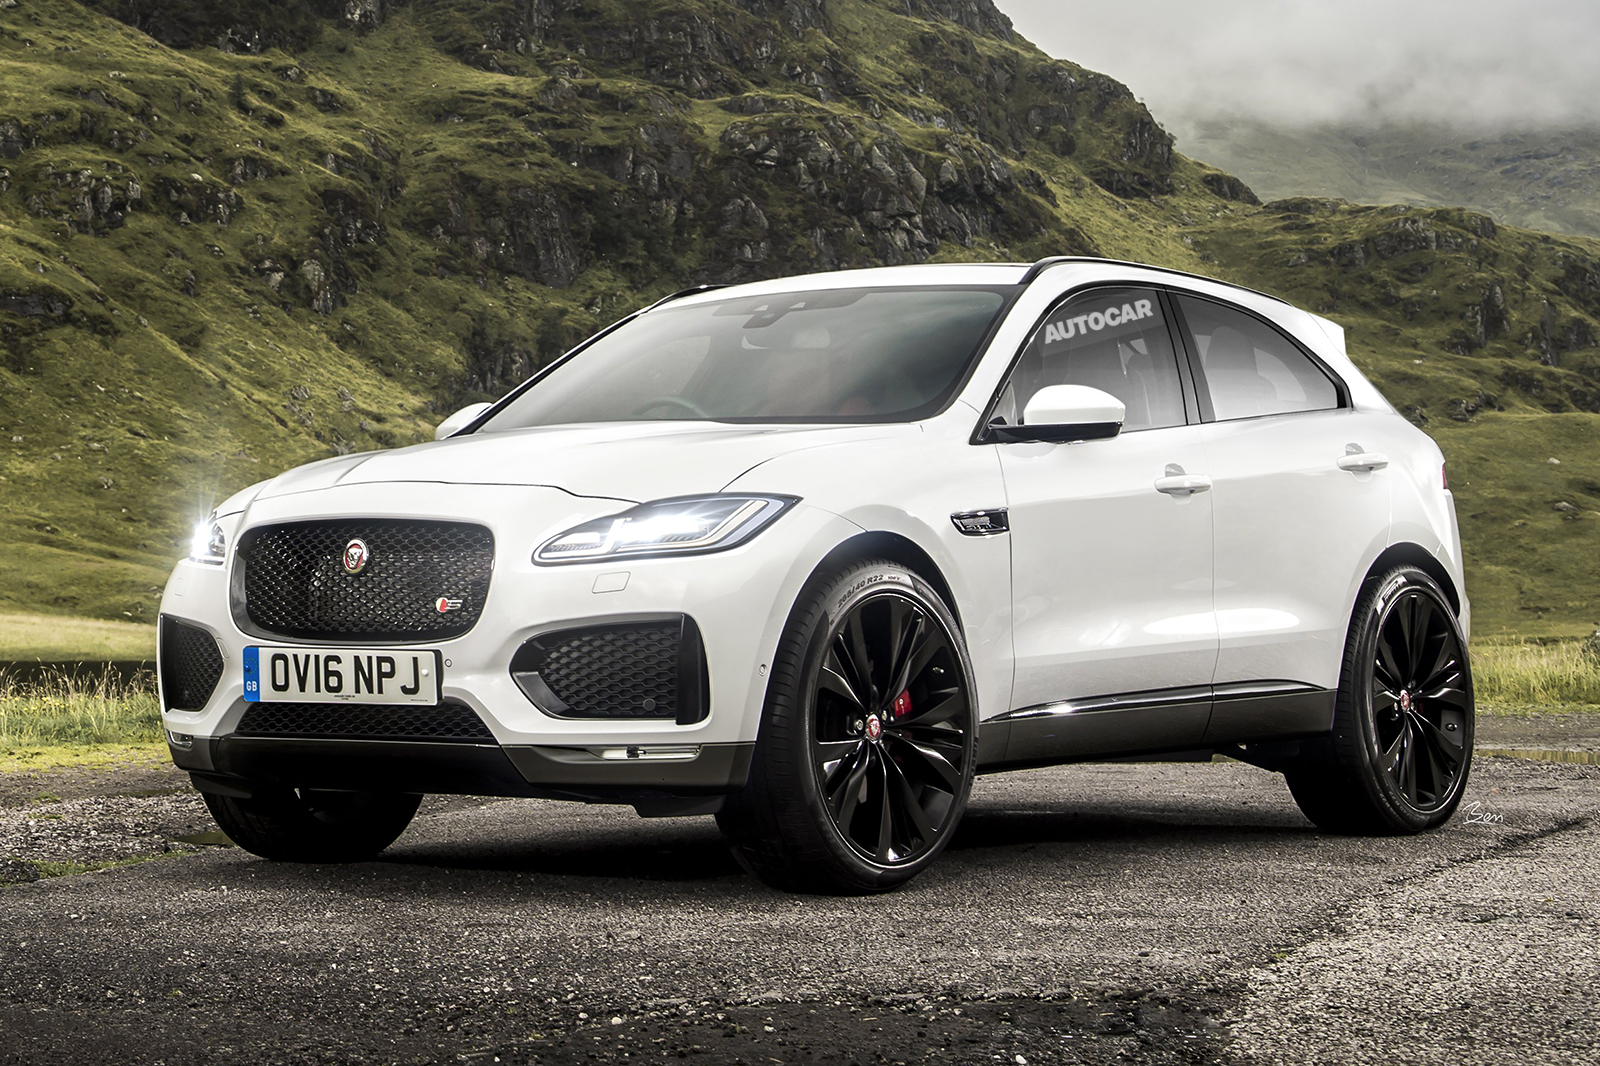 Jaguar Suv Price Uk Jaguar E Pace New Compact Suv To Become Best Selling